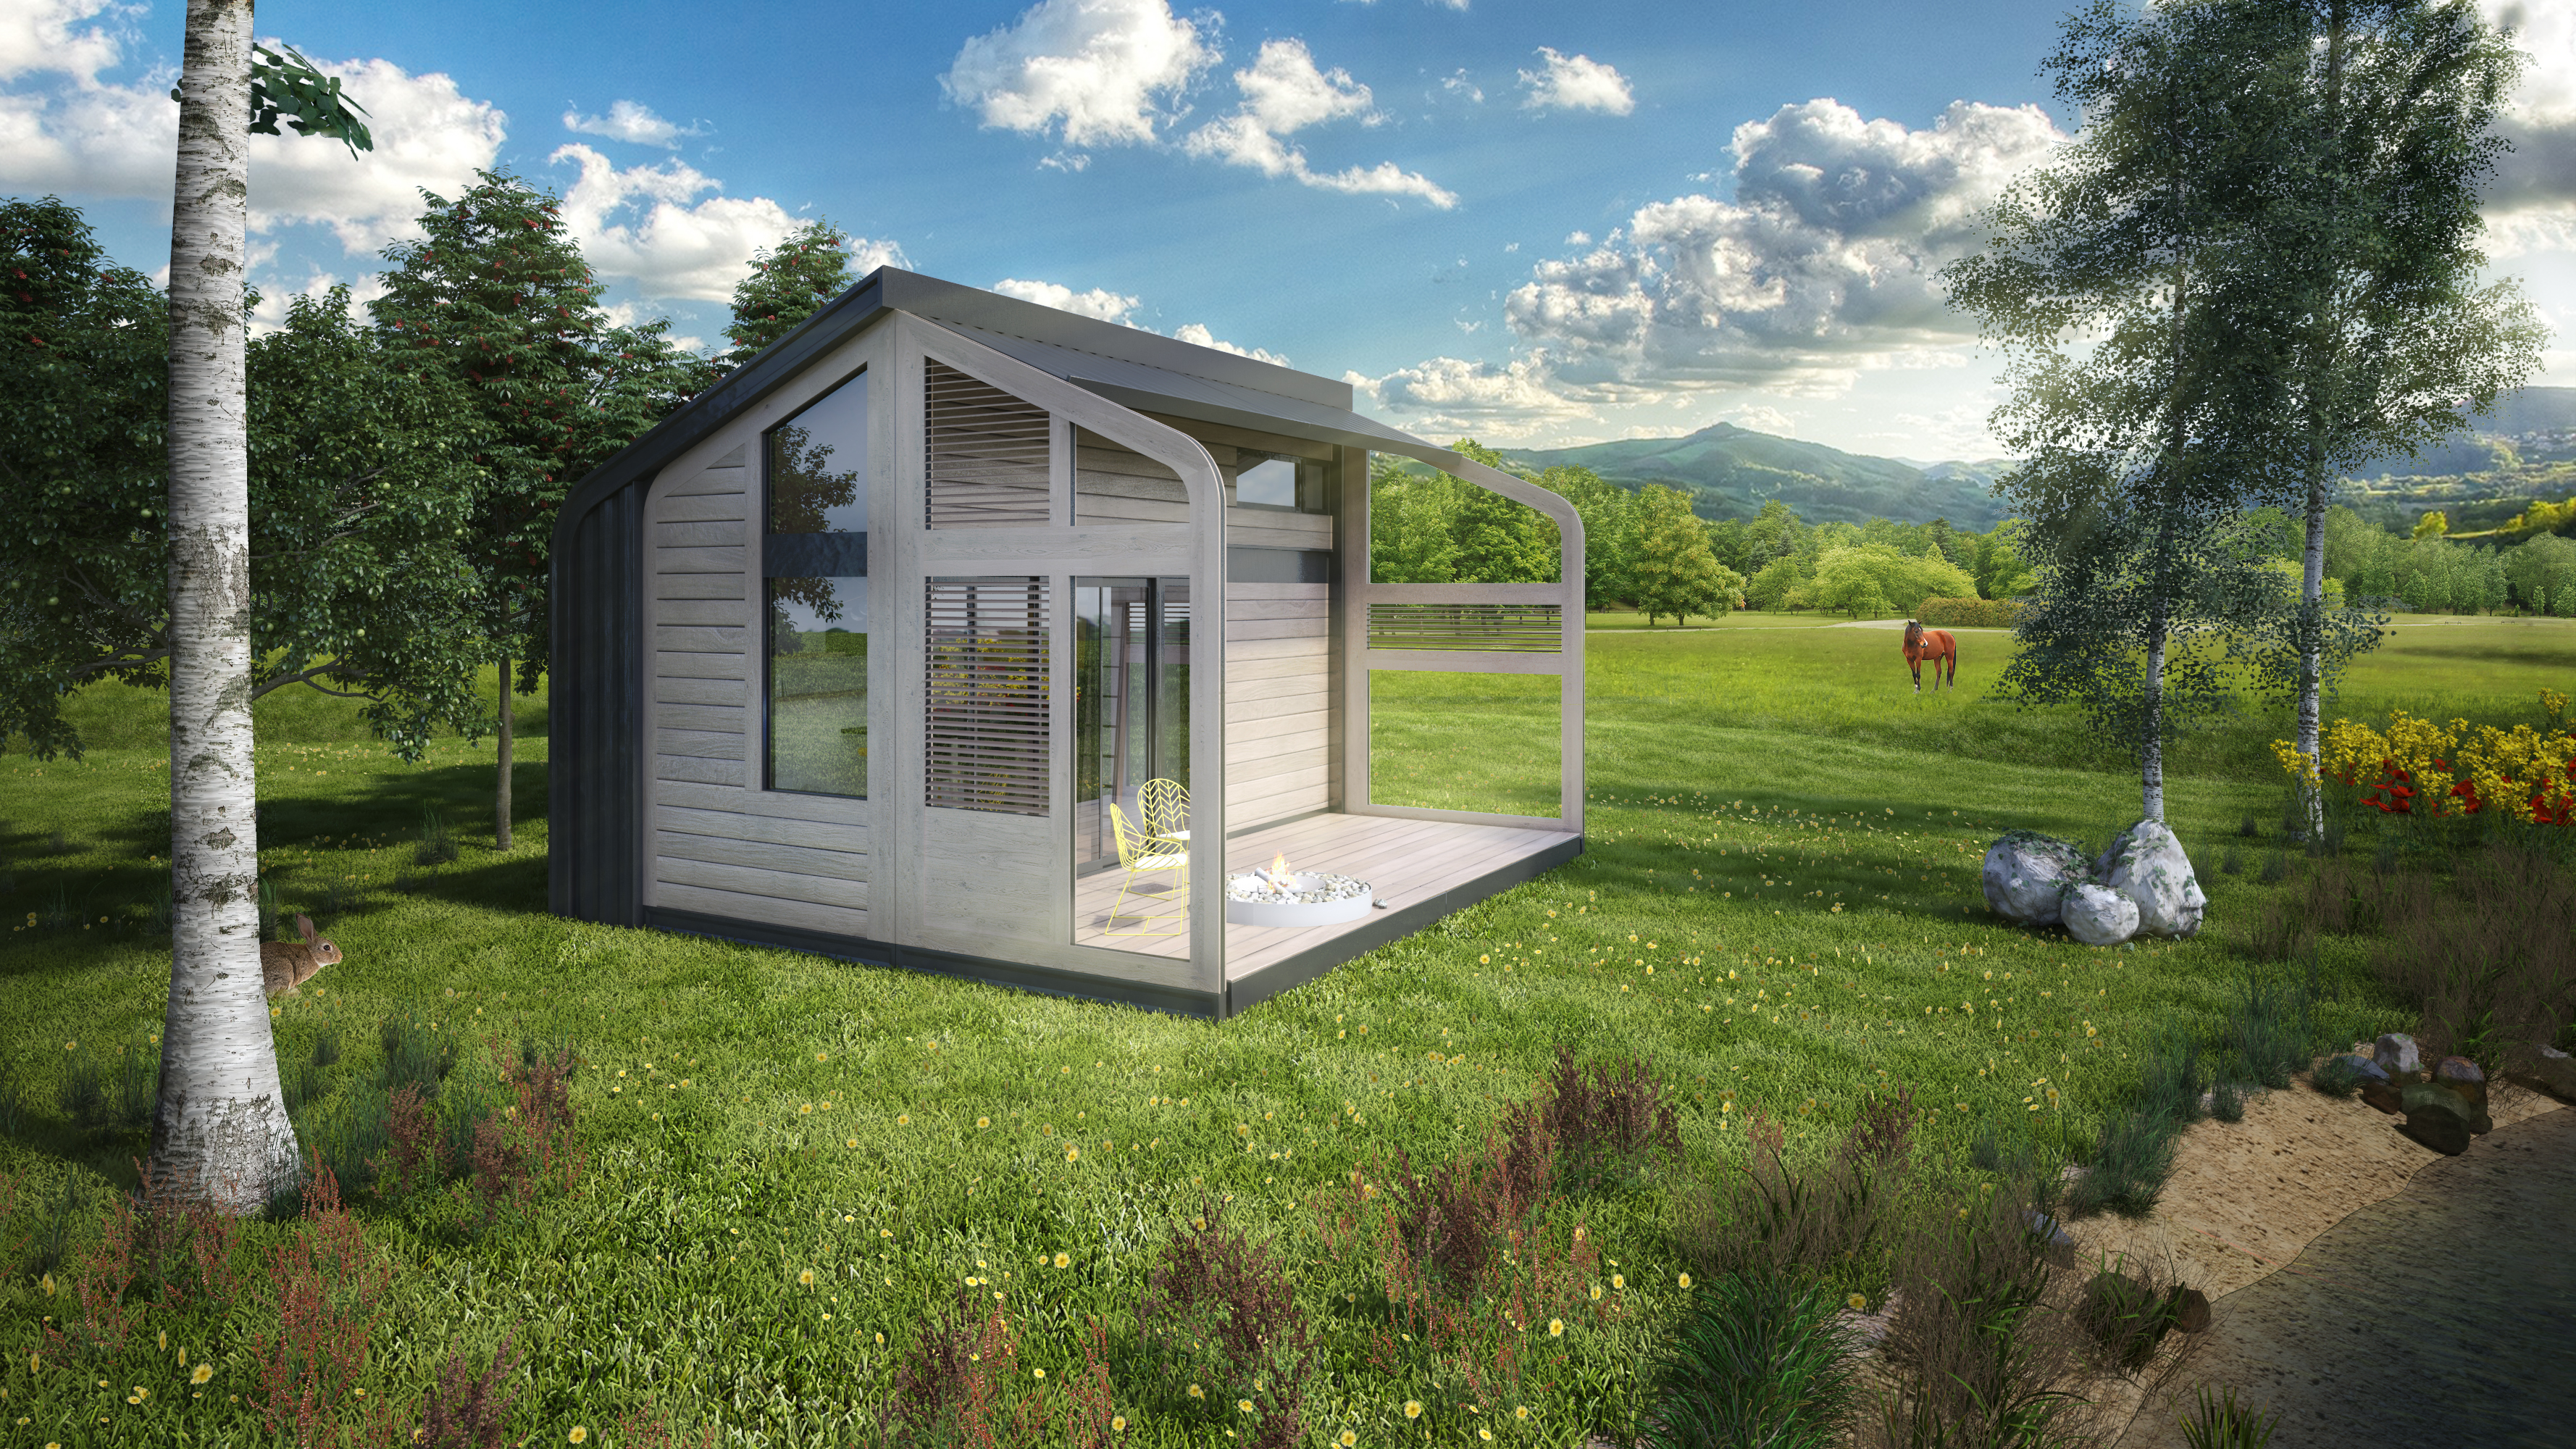 Designing A Small House Salt And Water 39s Portable Tiny House Not On Wheels